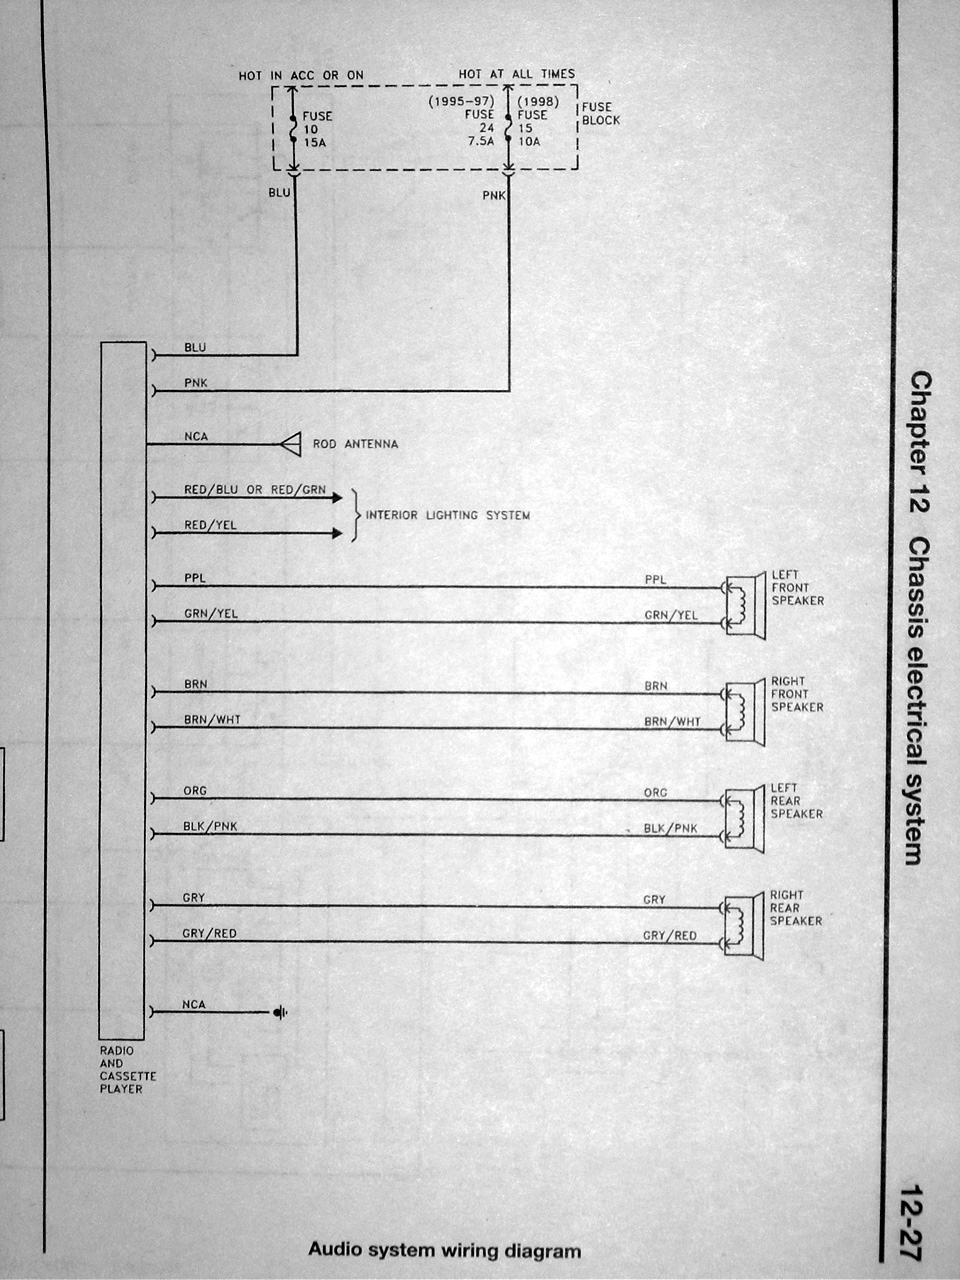 1994 Nissan Sentra Wiring Content Resource Of Wiring Diagram \u2022 2001 Nissan  Sentra Wiring Diagram 2000 Nissan Sentra Wiring Diagram